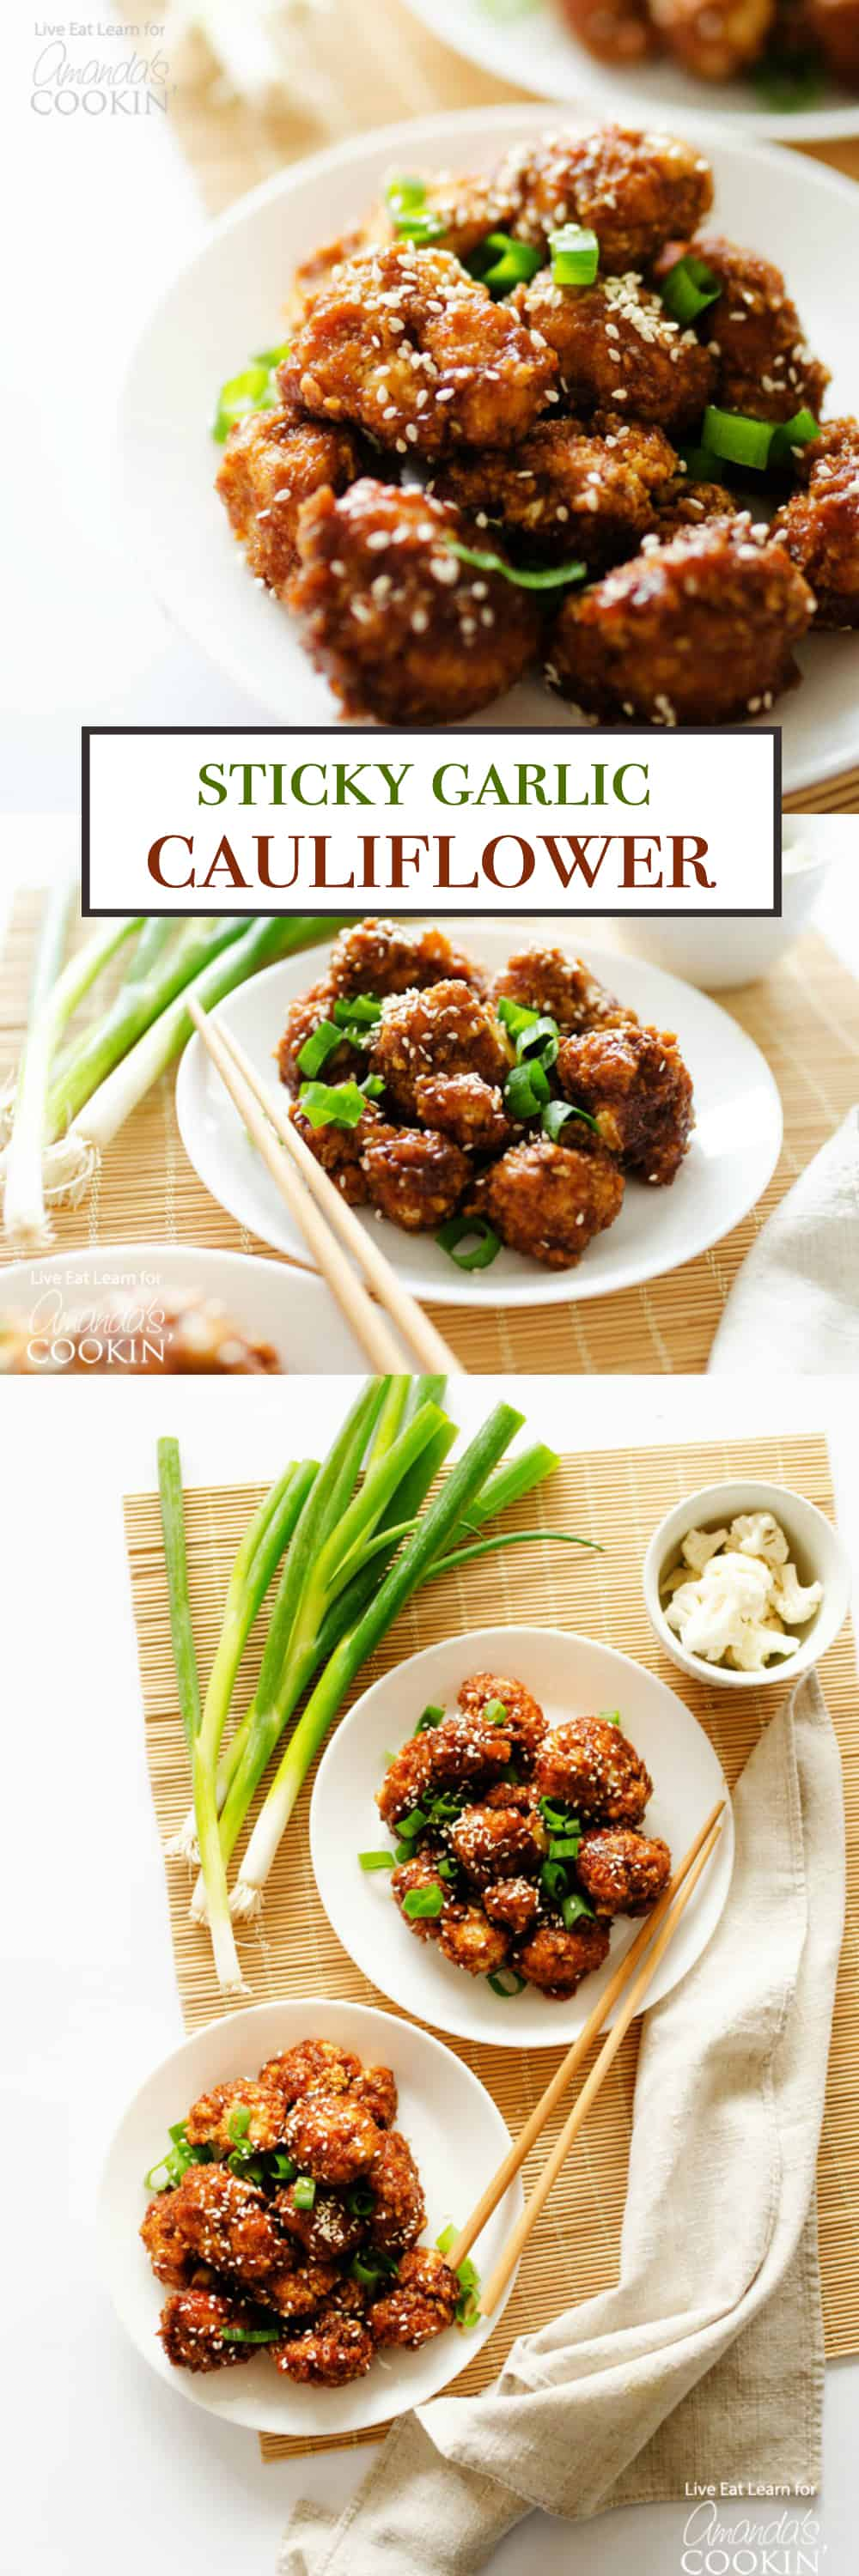 This Sticky Garlic Cauliflower tastes just like the sticky garlic chicken dishes at your favorite Chinese place, but made completely from veggies!